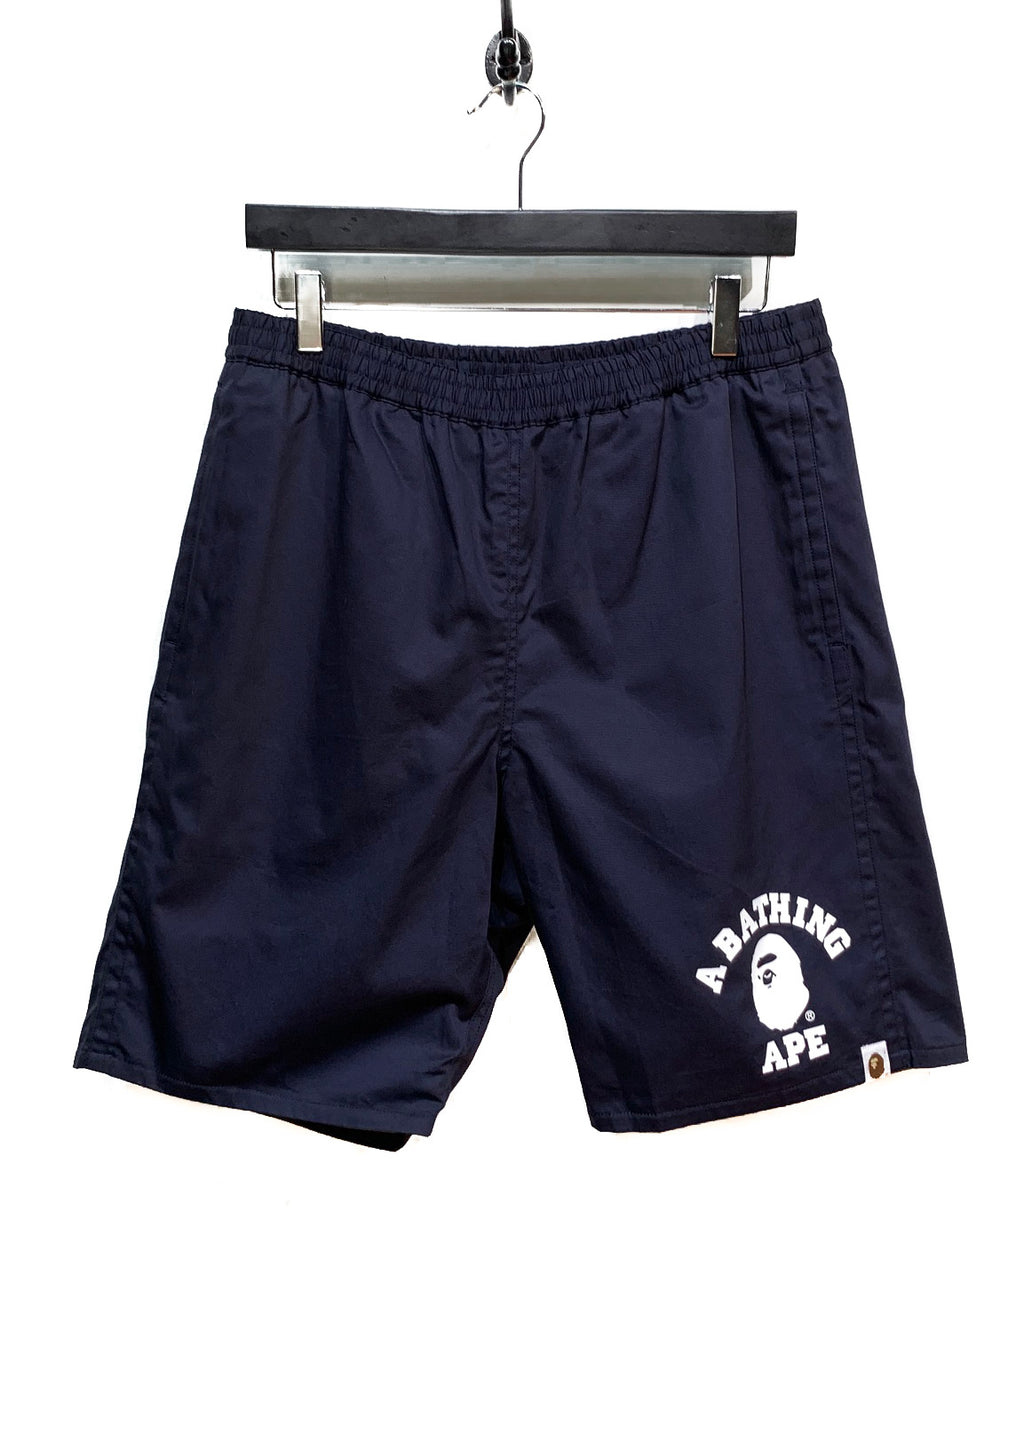 Bape Navy Cotton Camo Polyester Reversible Swimwear Shorts